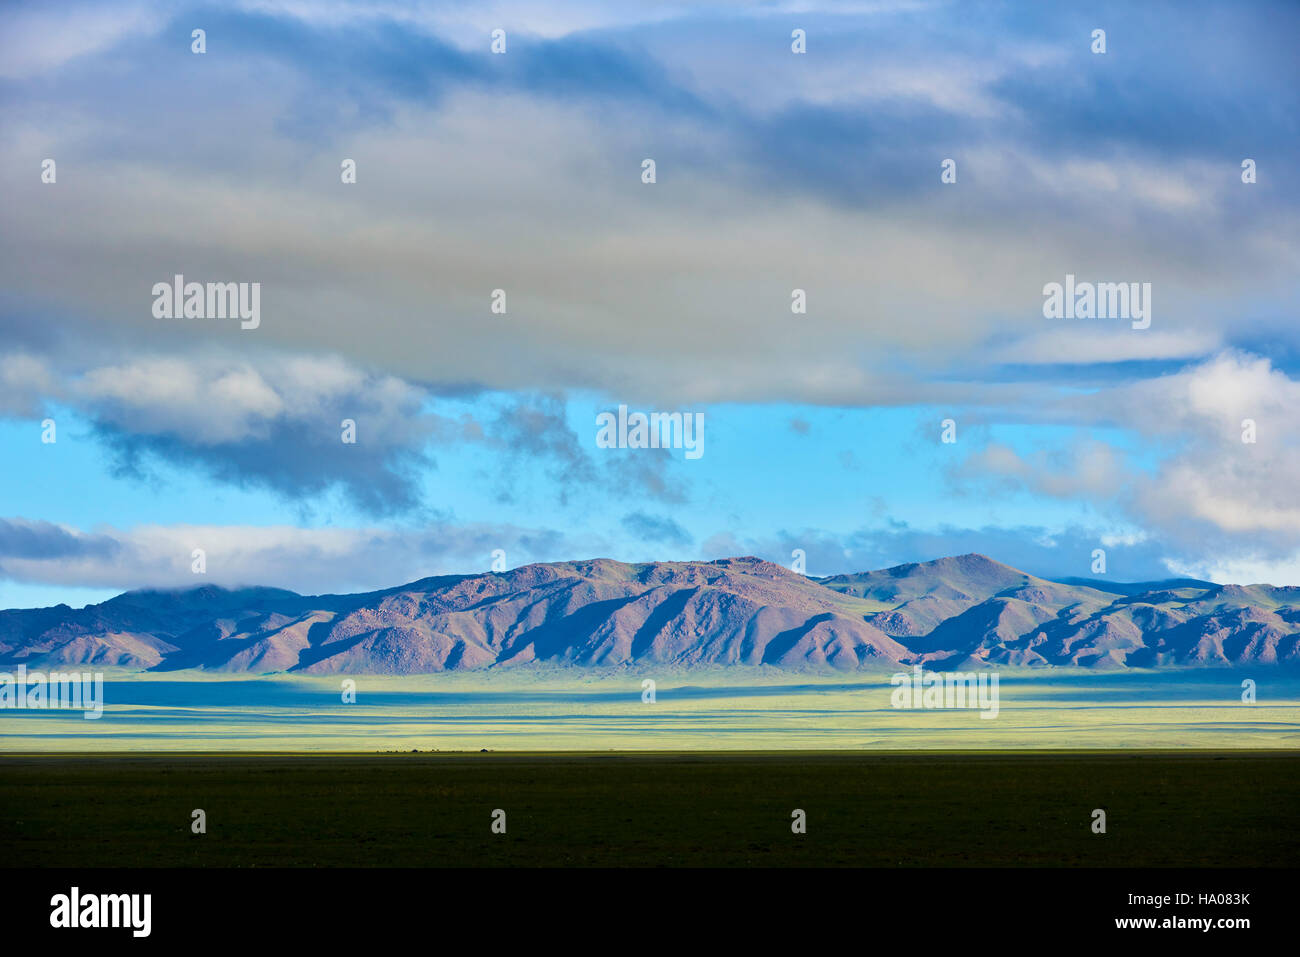 Mongolia, Gobi-Altay province, western Mongolia, landscape in the steppe - Stock Image